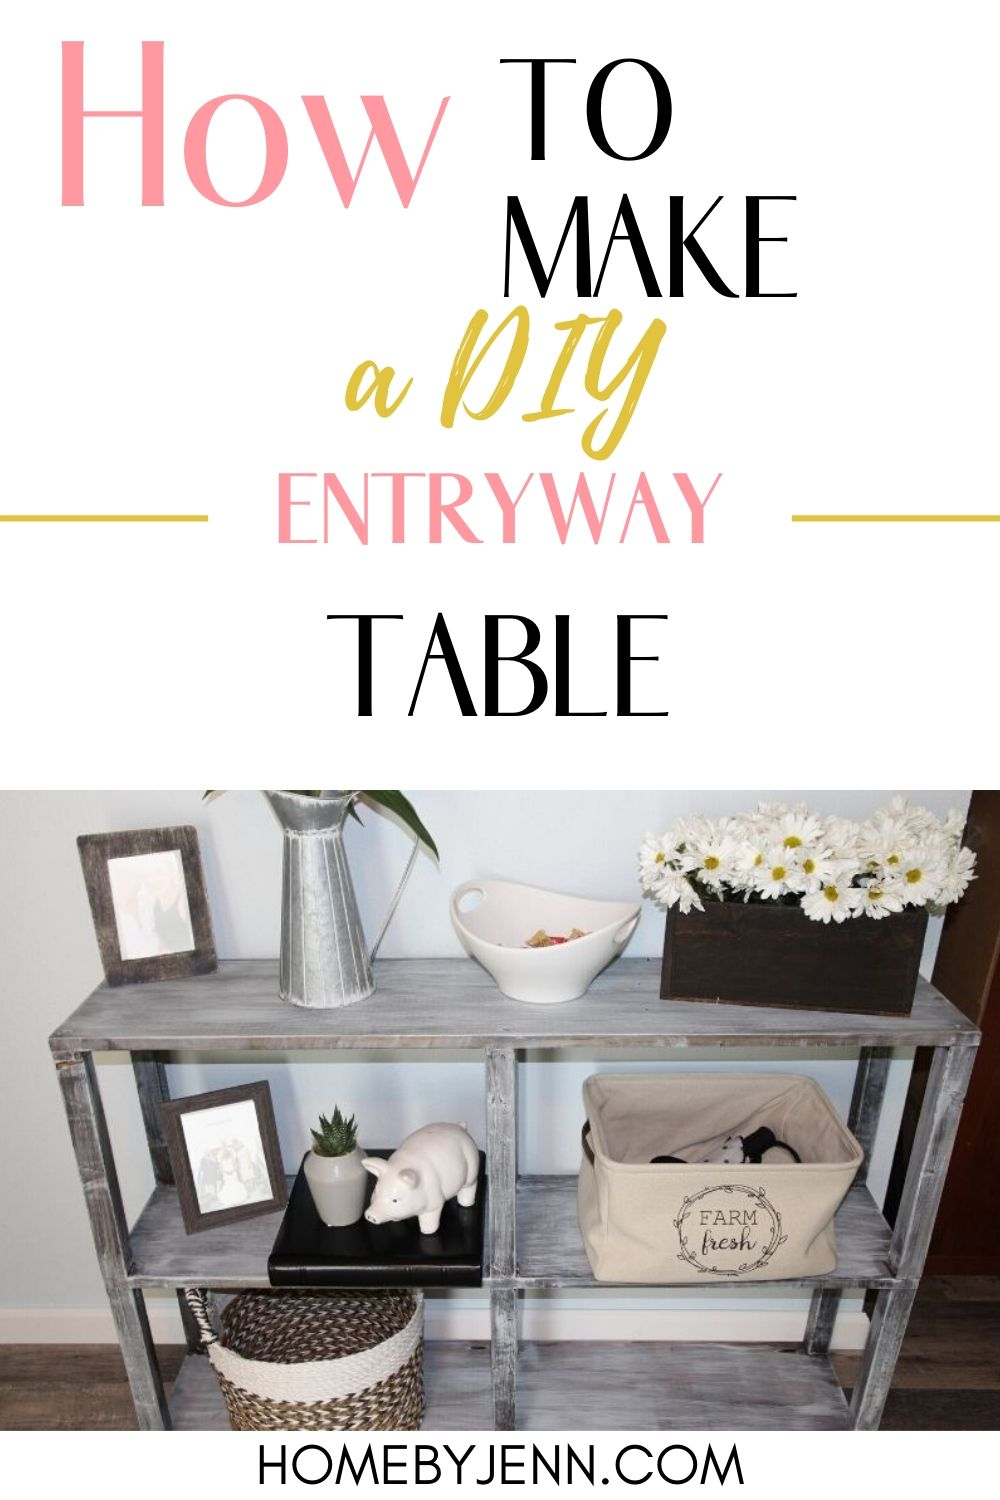 entryway table with flowers and photos via @homebyjenn